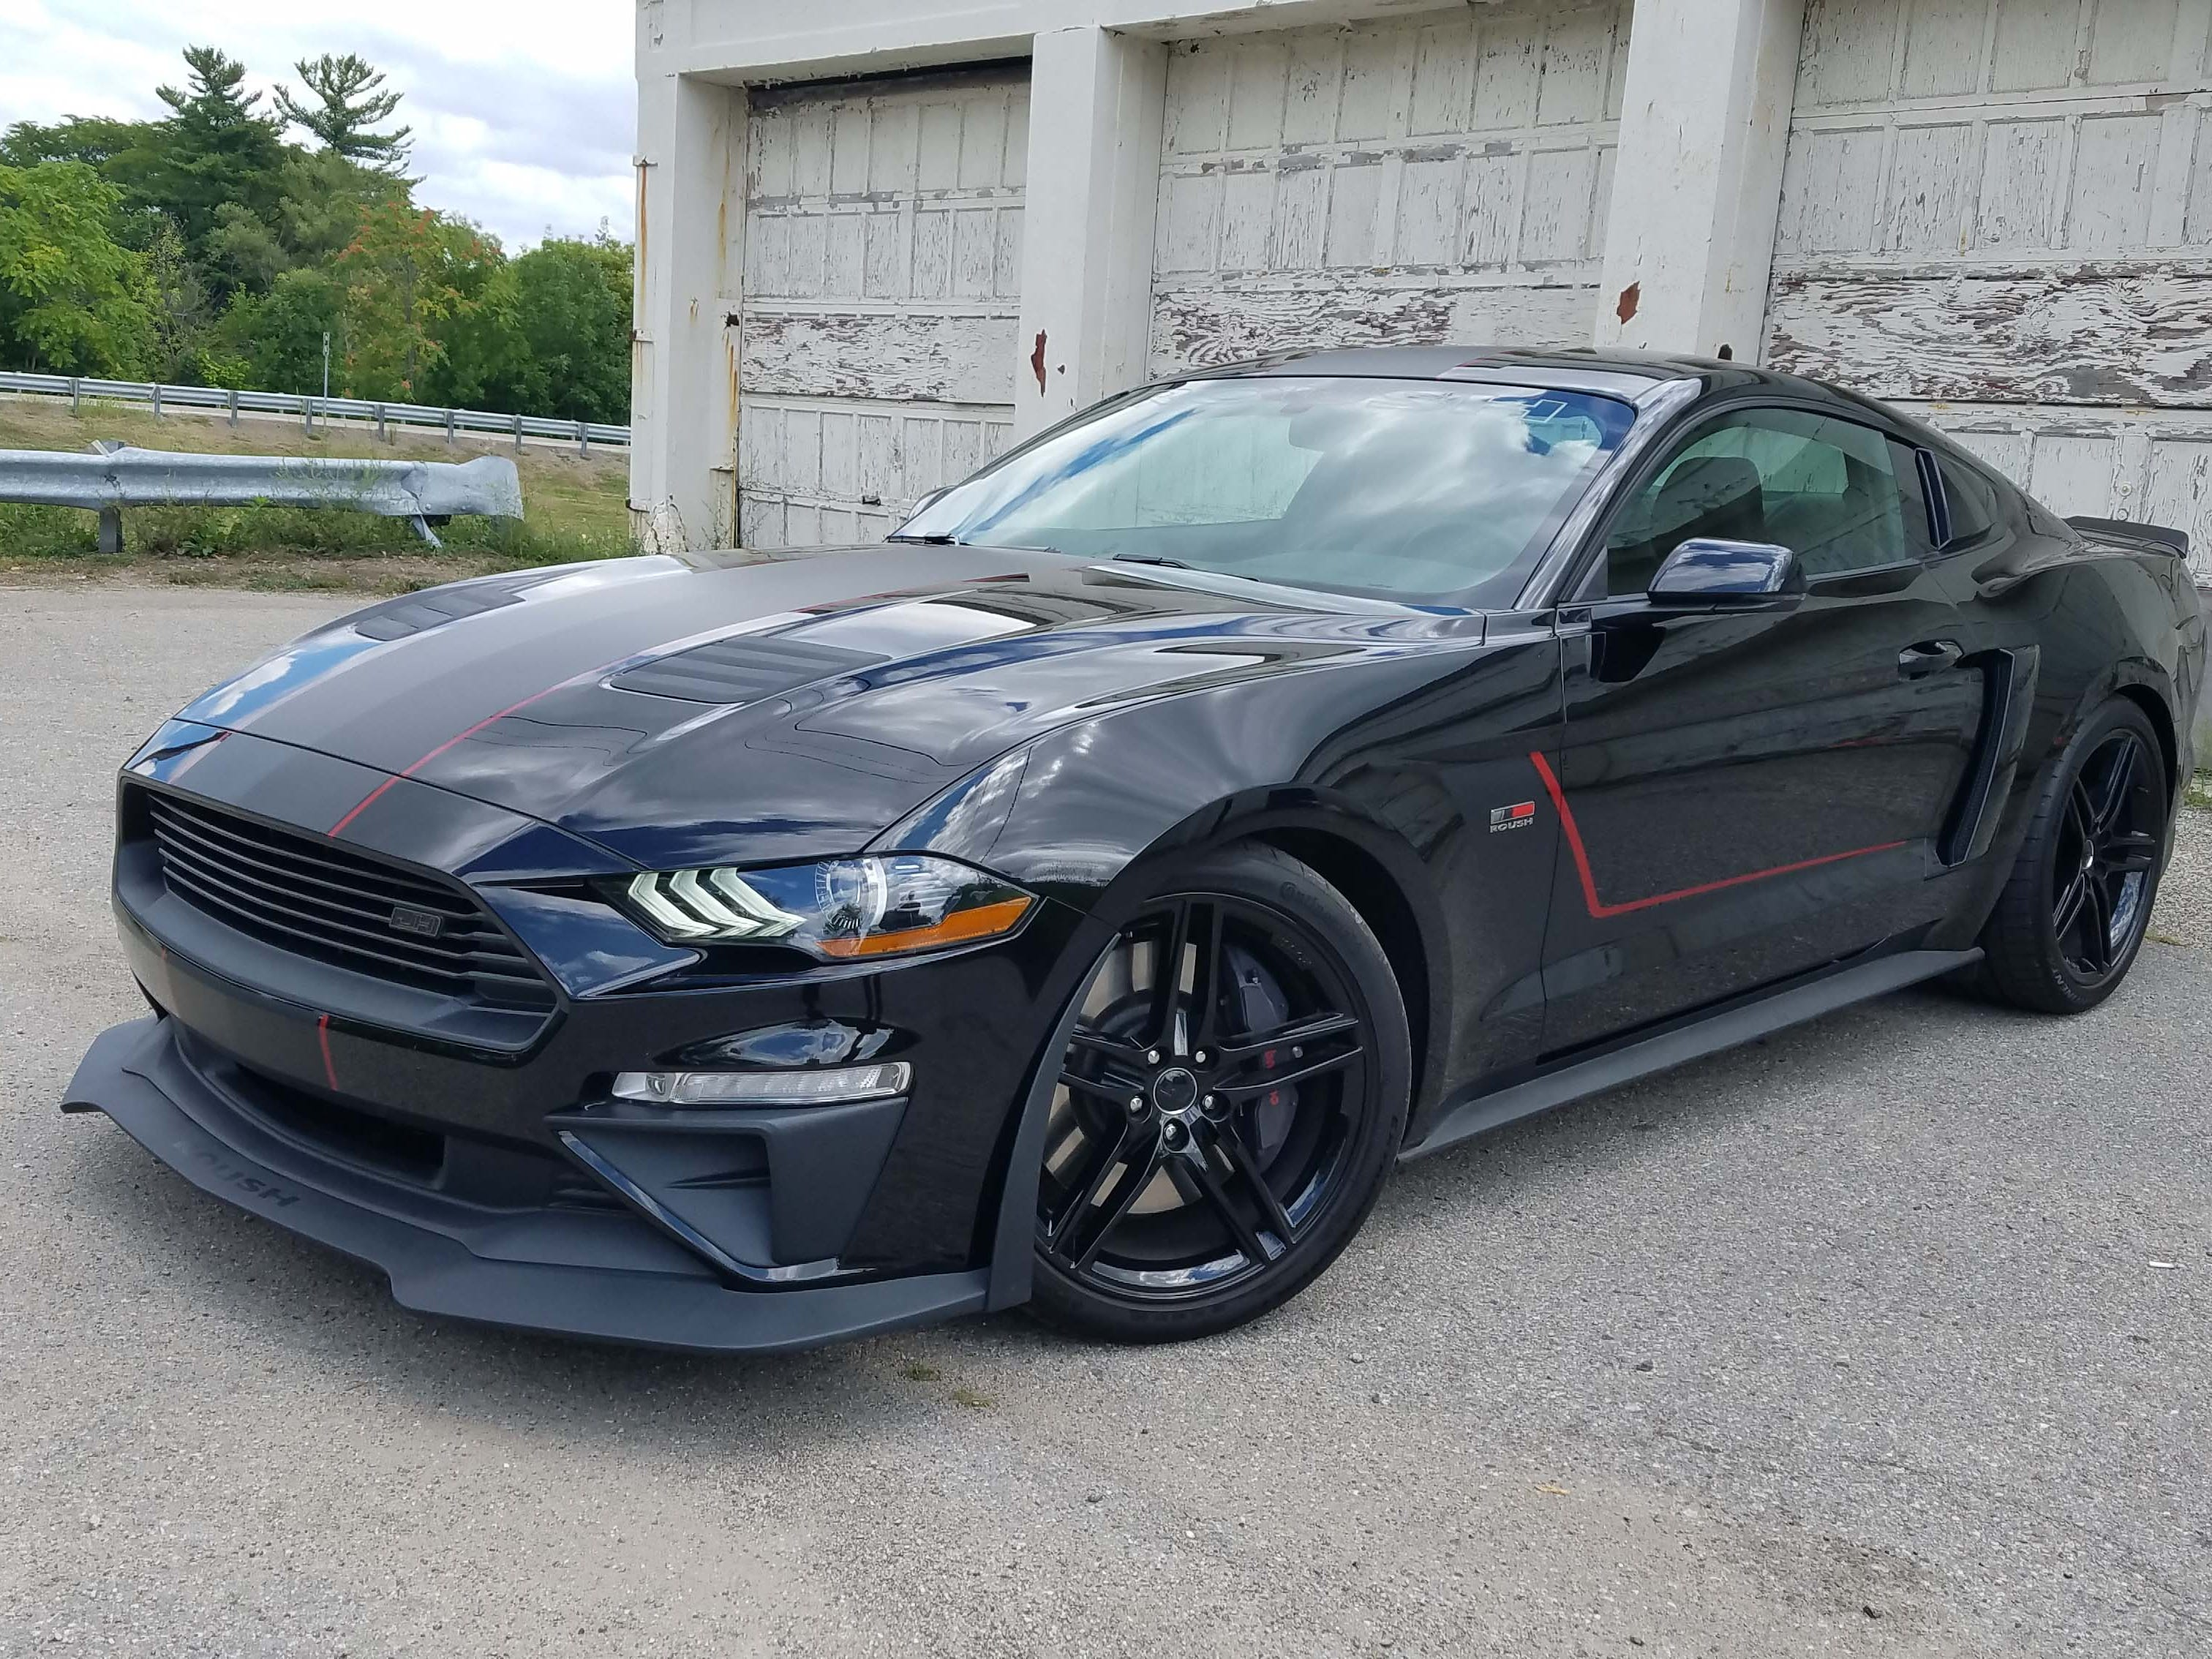 New for 2018, the Roush Jackhammer Mustang upgrades Ford's iconic pony with 710 horsepower and suspension upgrades for extreme performance. The base Mustang GT starts at $36,090 with the Jackhammer package starting at $14,765.